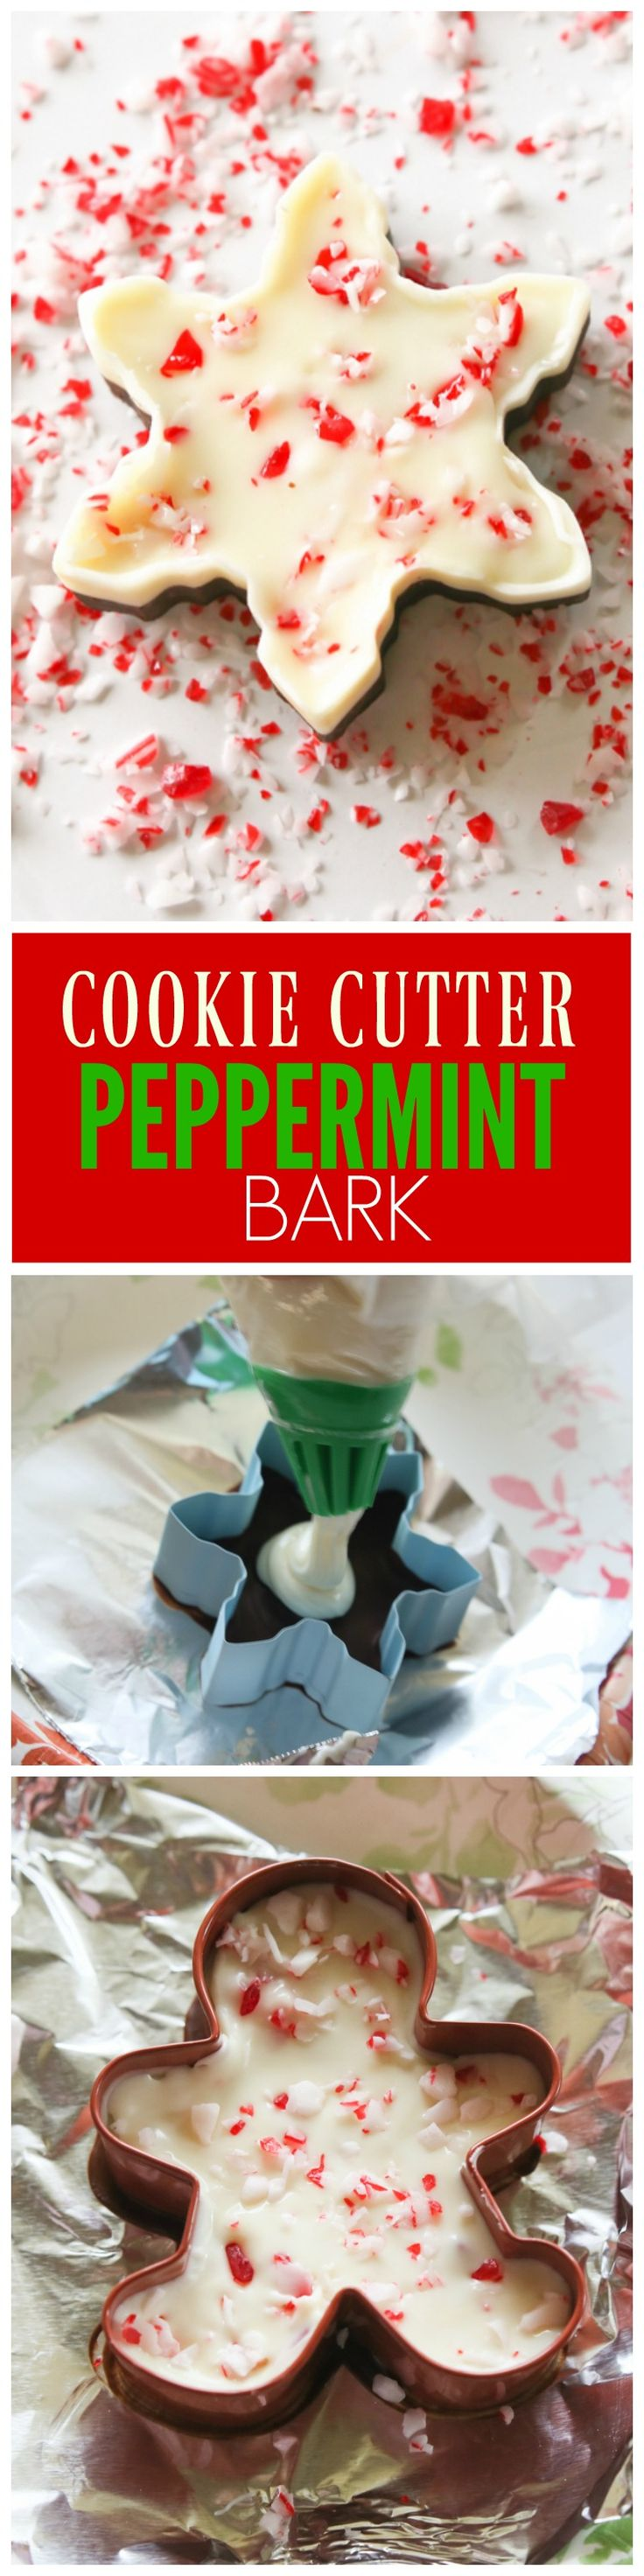 Cookie Cutter Peppermint Bark - the-girl-who-ate-everything.com